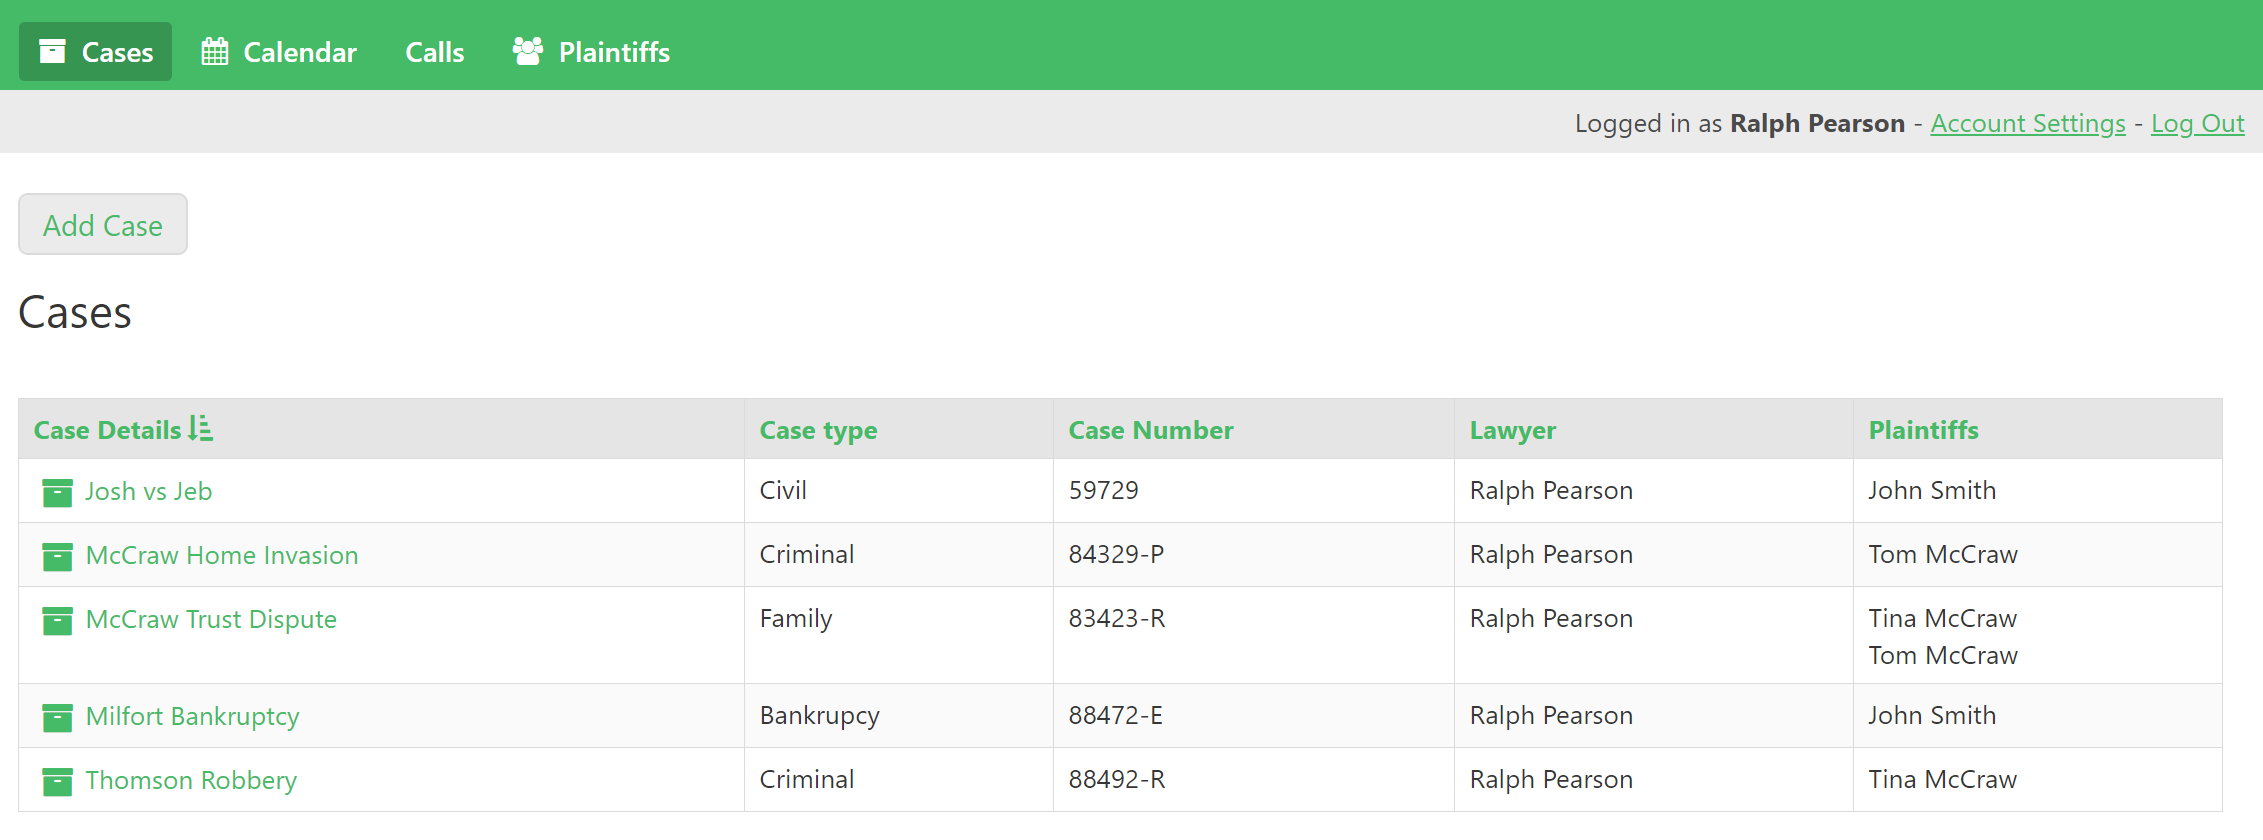 Lawyers log into the app where they immediately see their cases. They can then navigate to other parts of the portal.